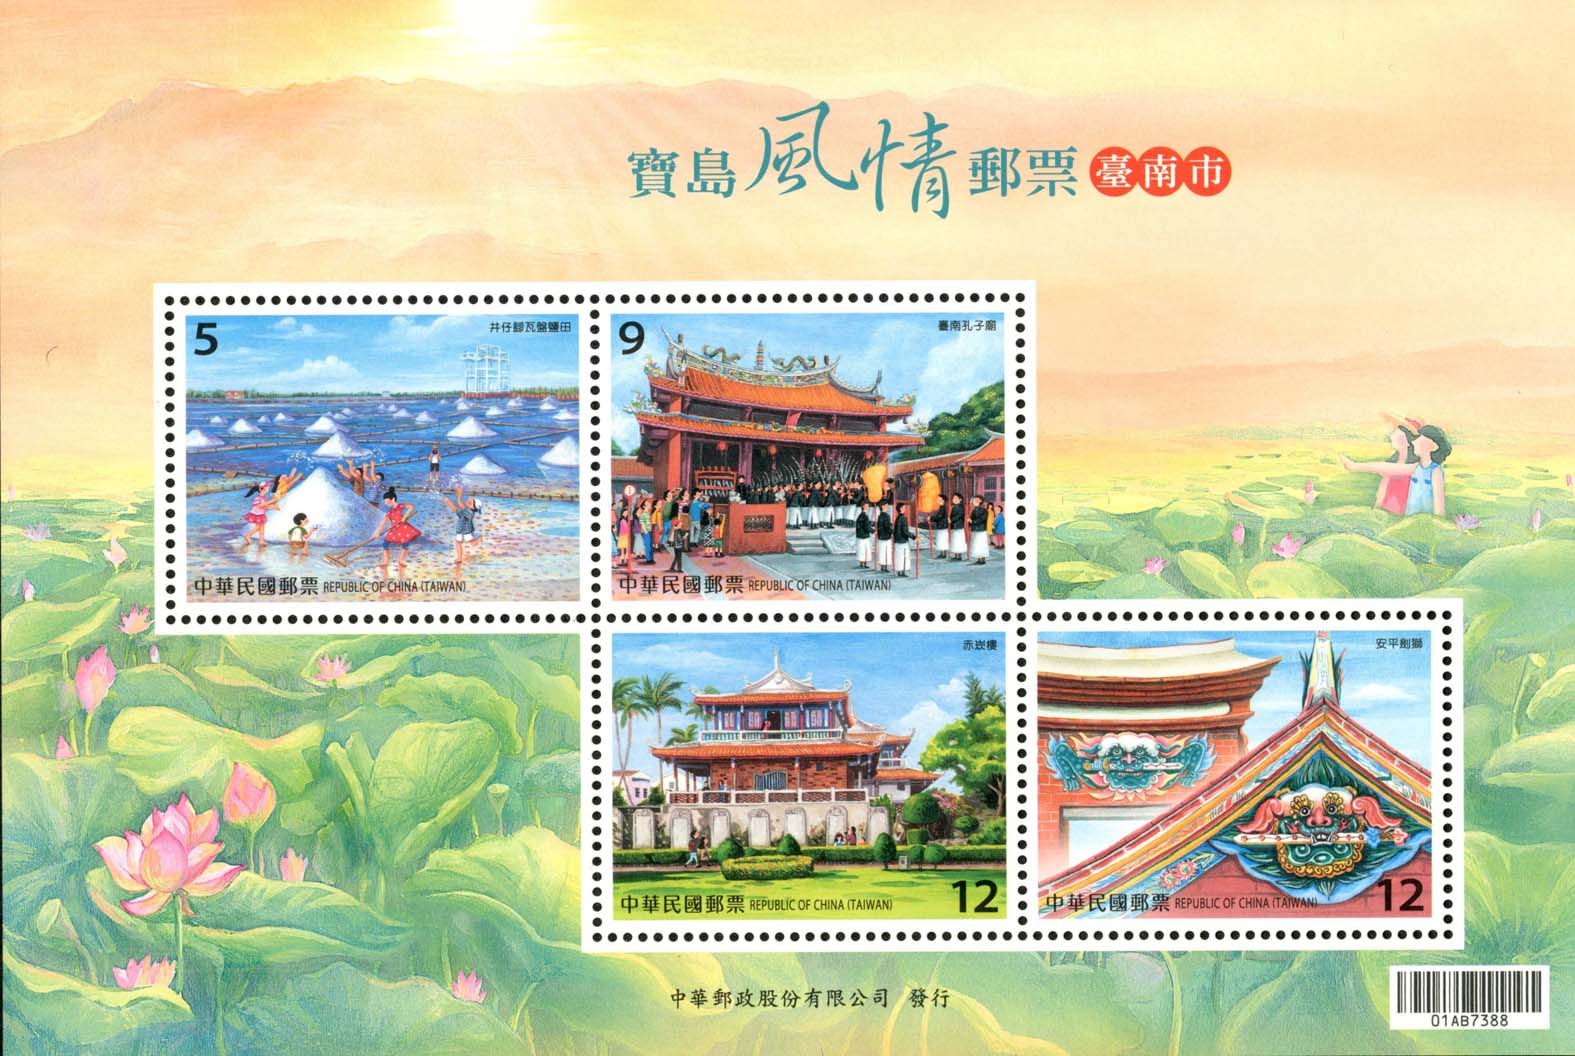 Taiwan Scenery Souvenir Sheet – Tainan City